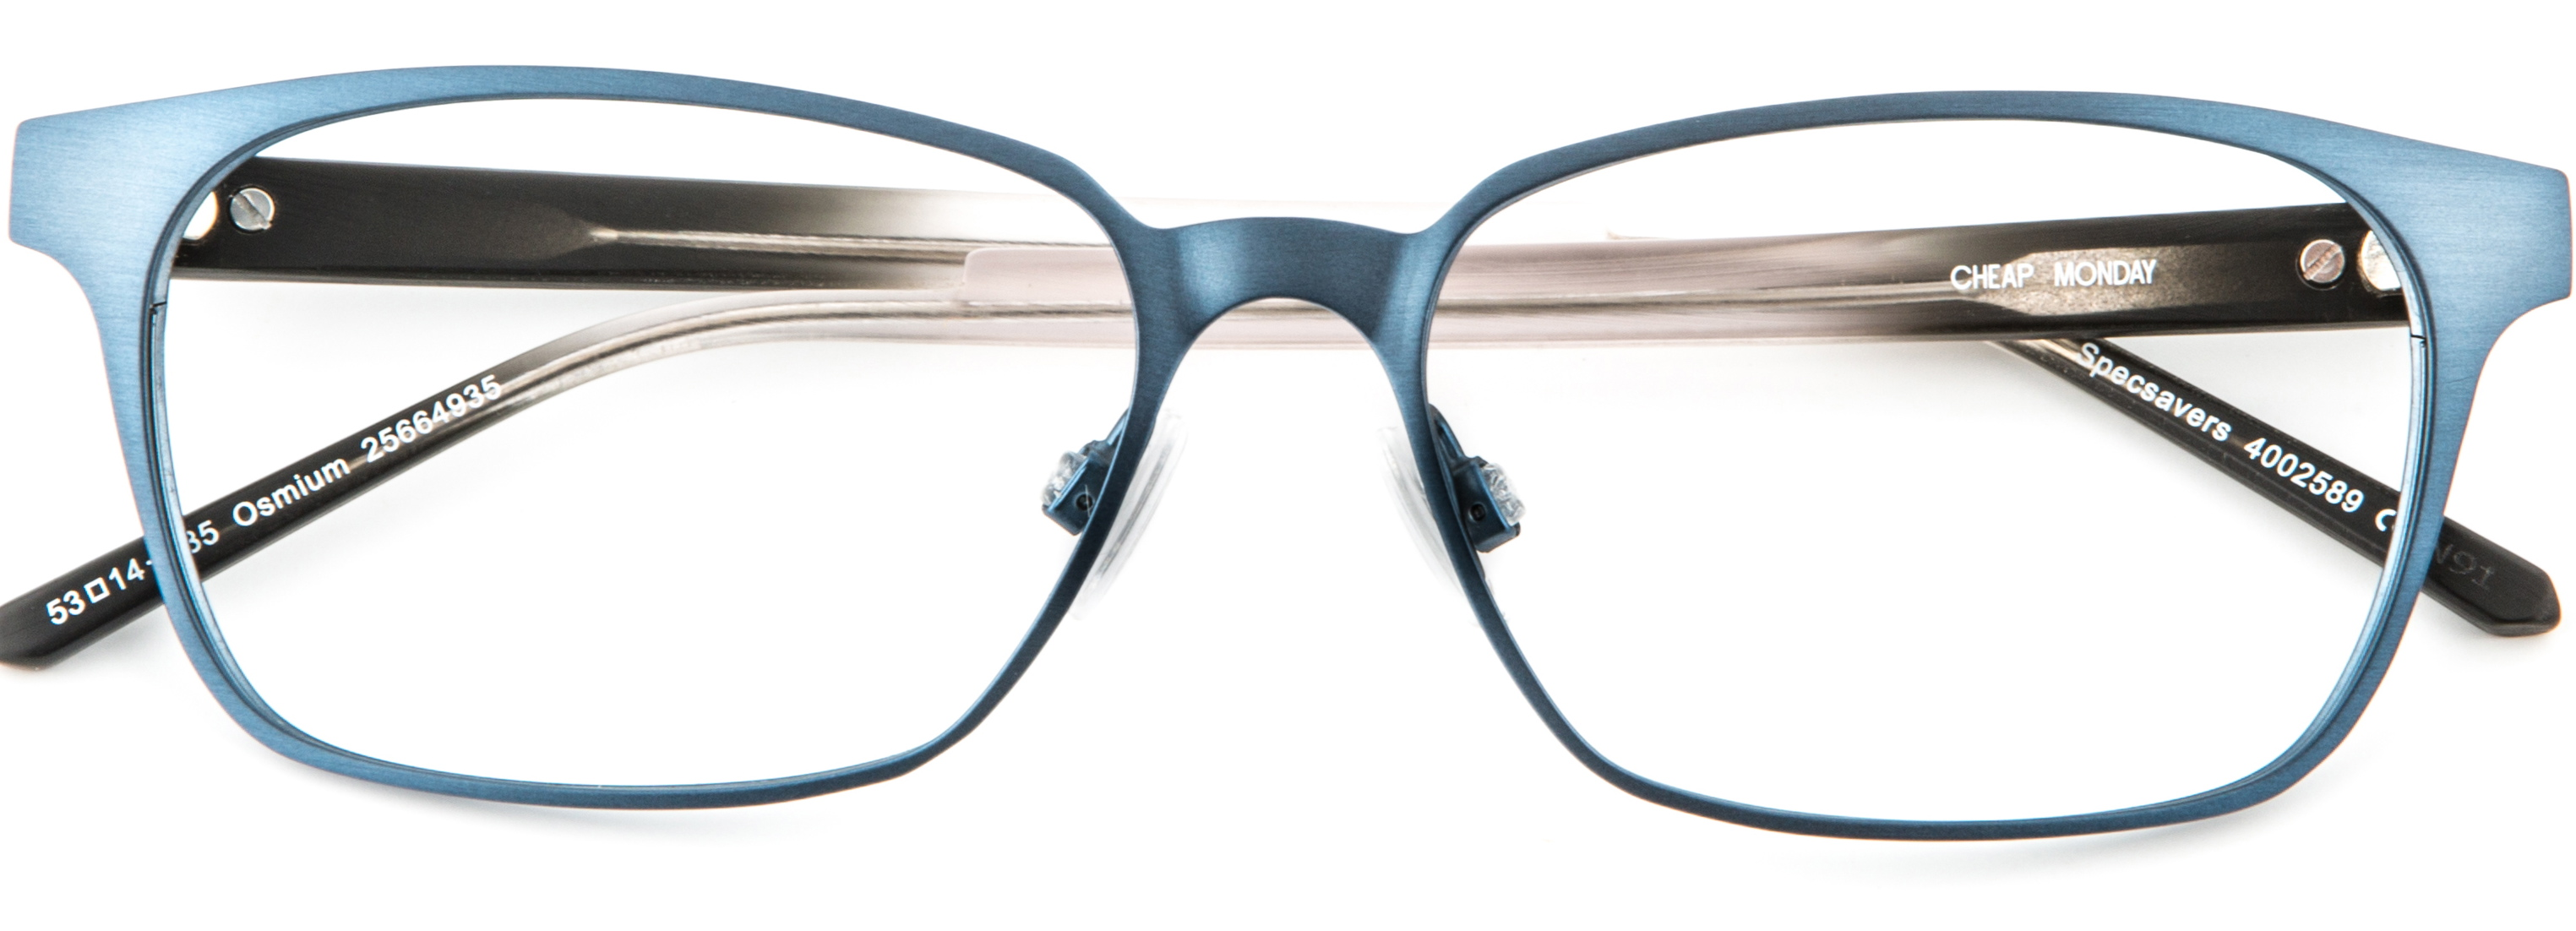 Broken Glasses Frame Specsavers : New glasses? Specsavers SS14 fashion frames launches So ...